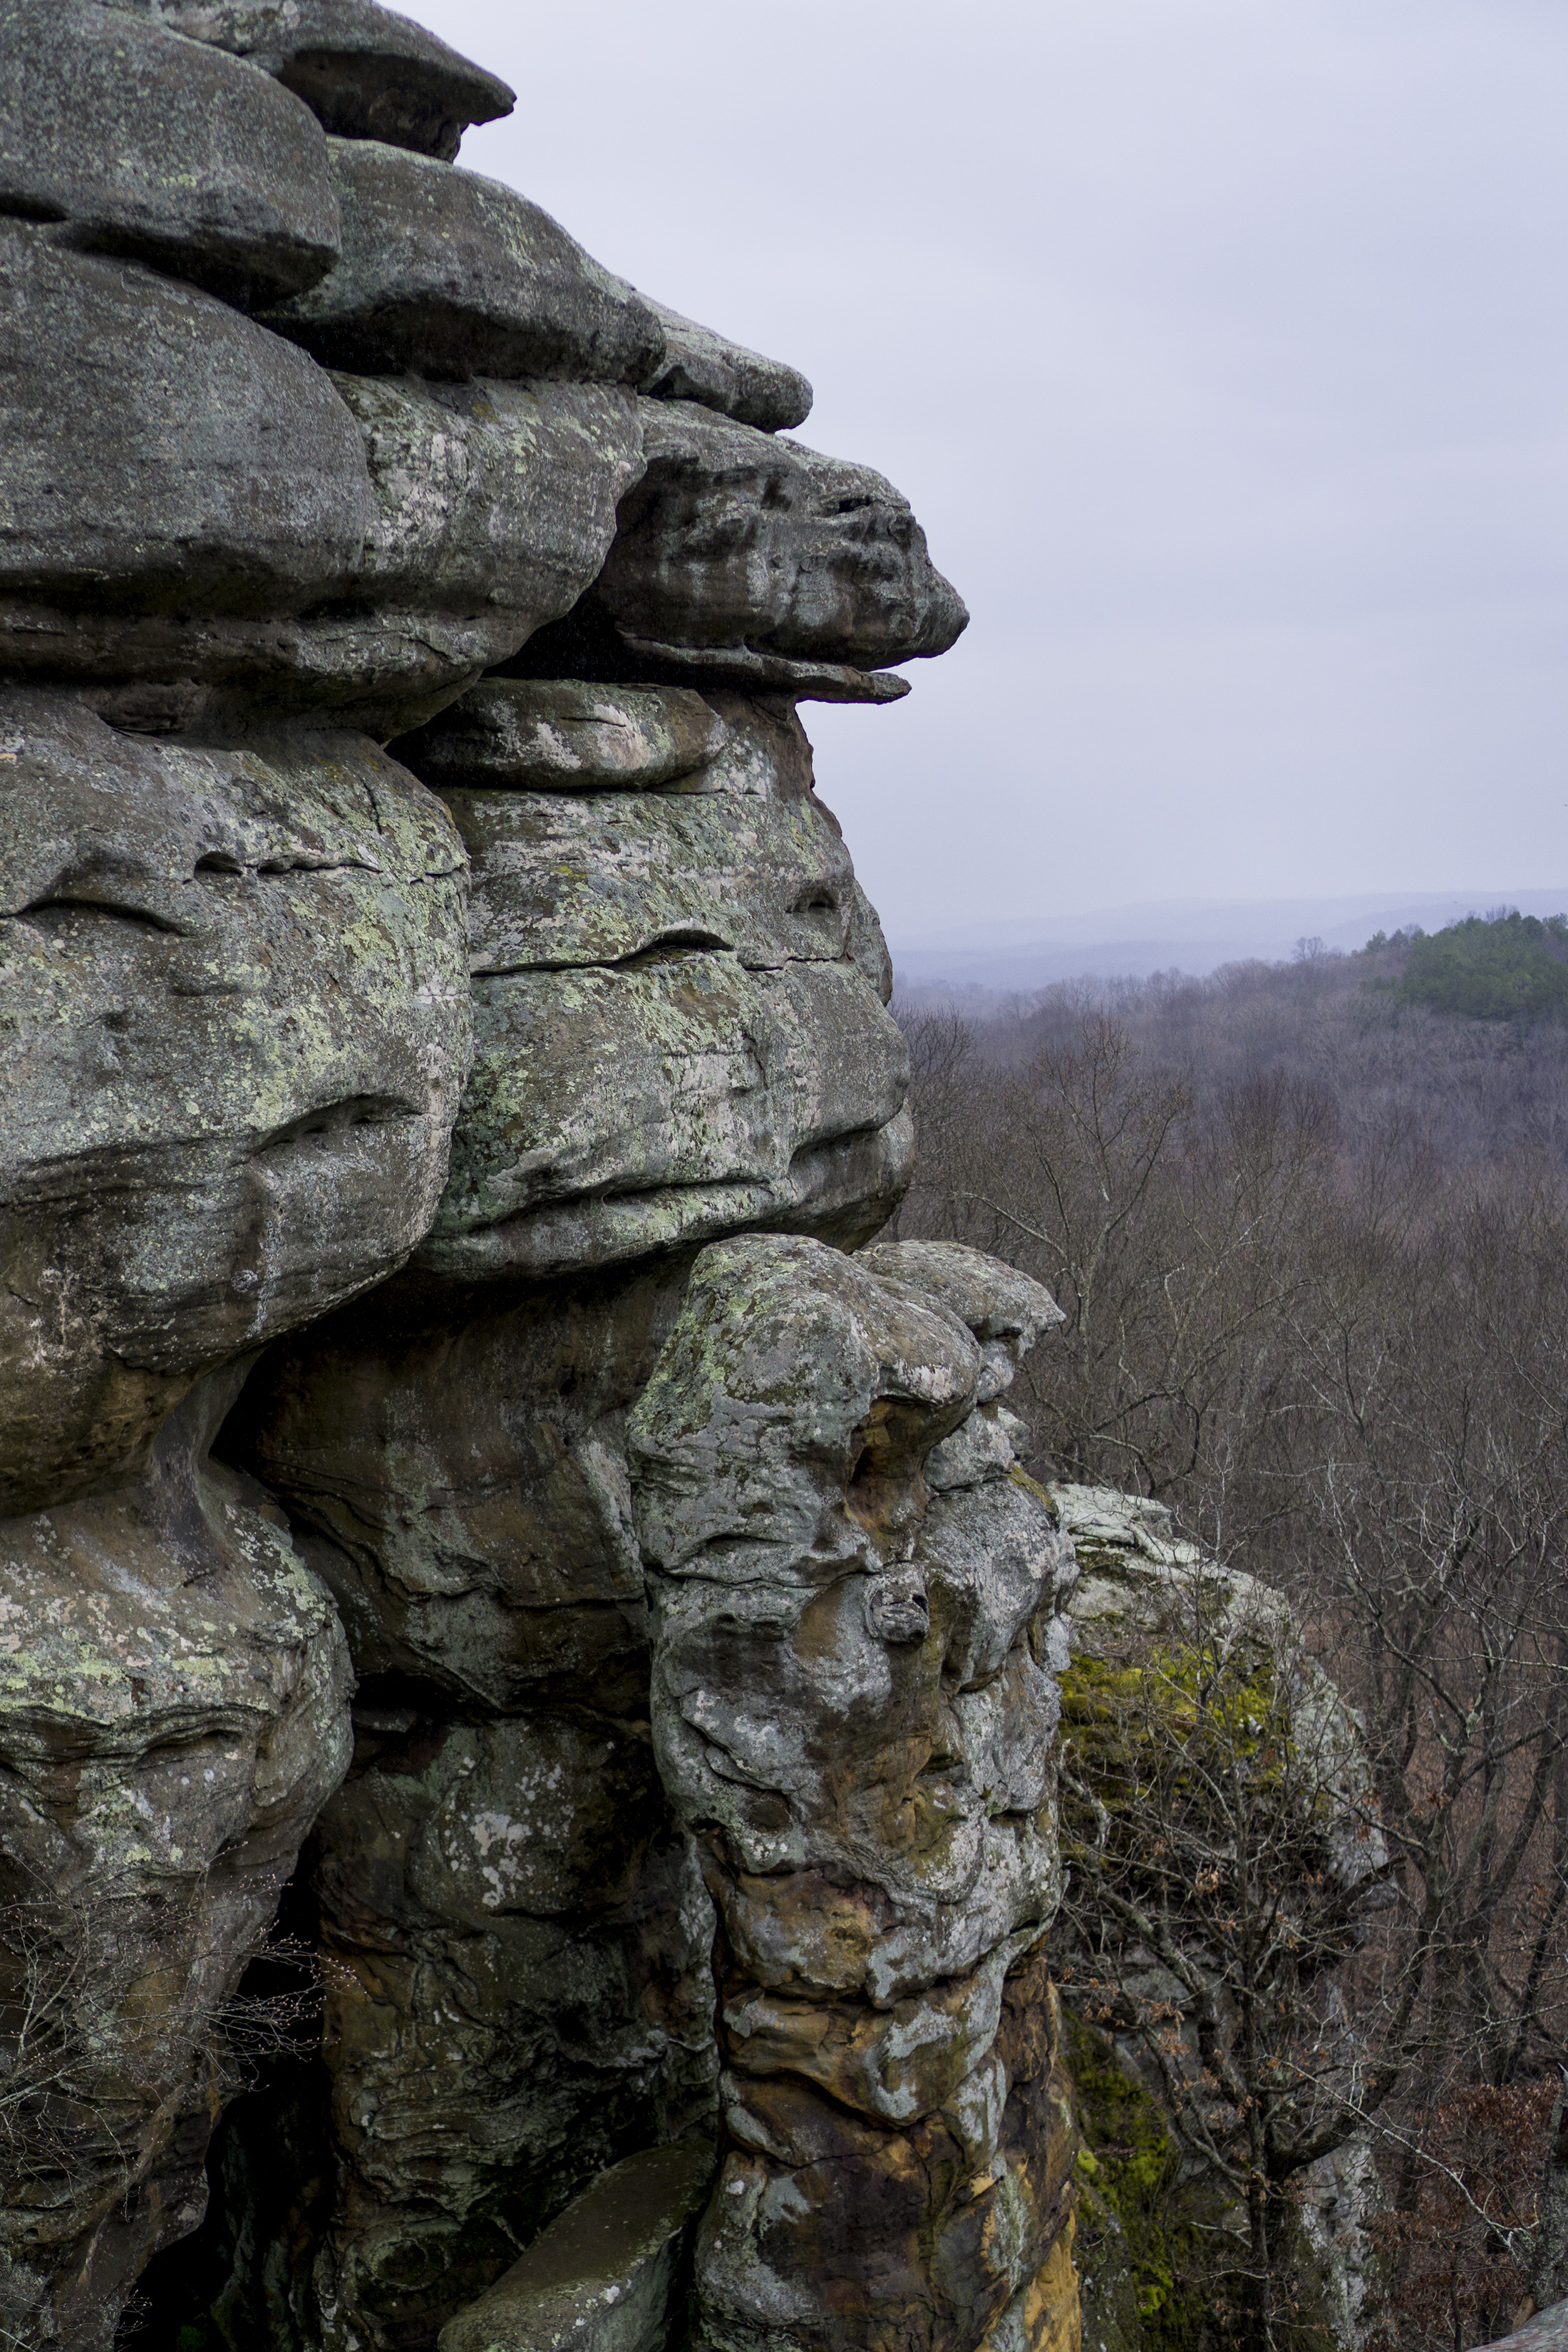 Devil's Smokestack in Garden of the Gods, Shawnee National Forest, IL / Darker than Green